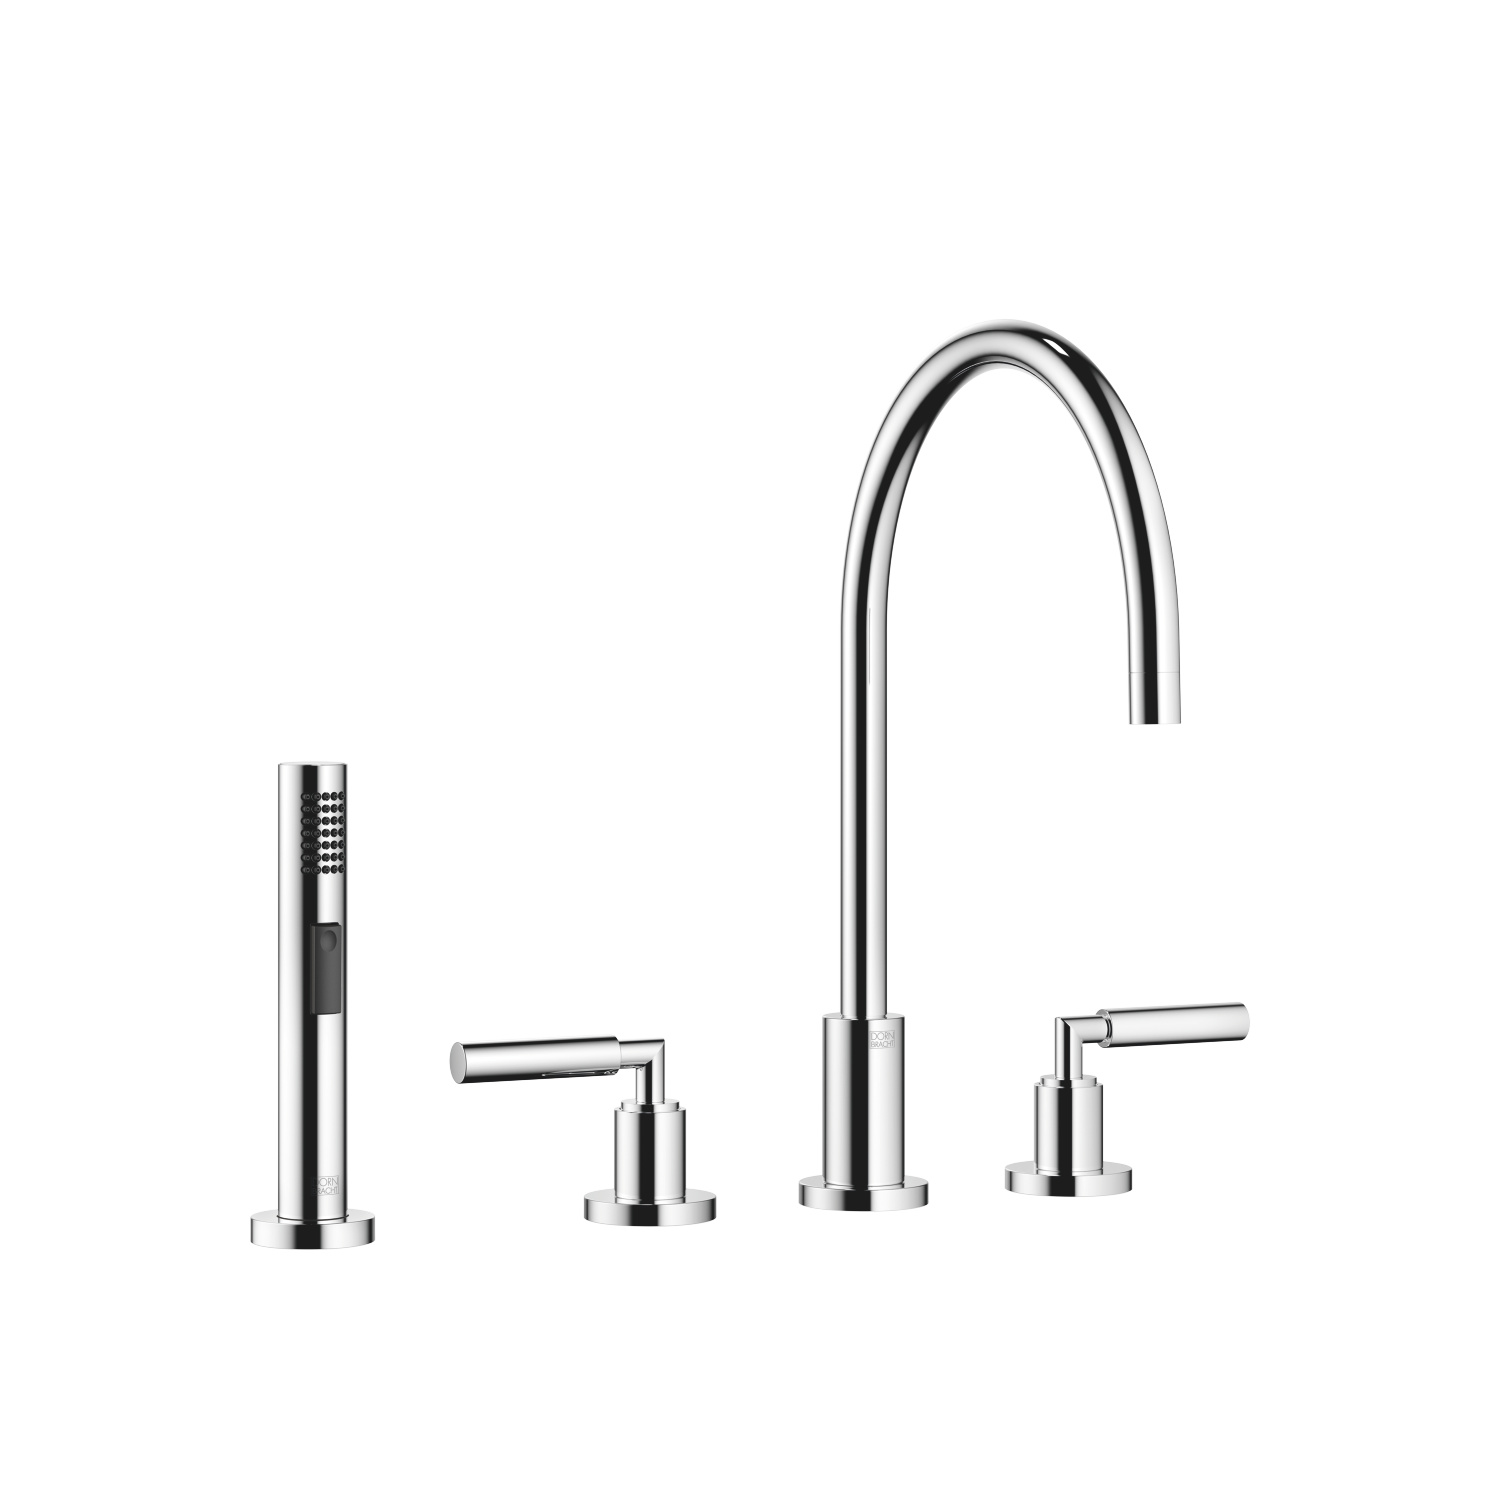 Three-hole mixer with rinsing spray set - polished chrome